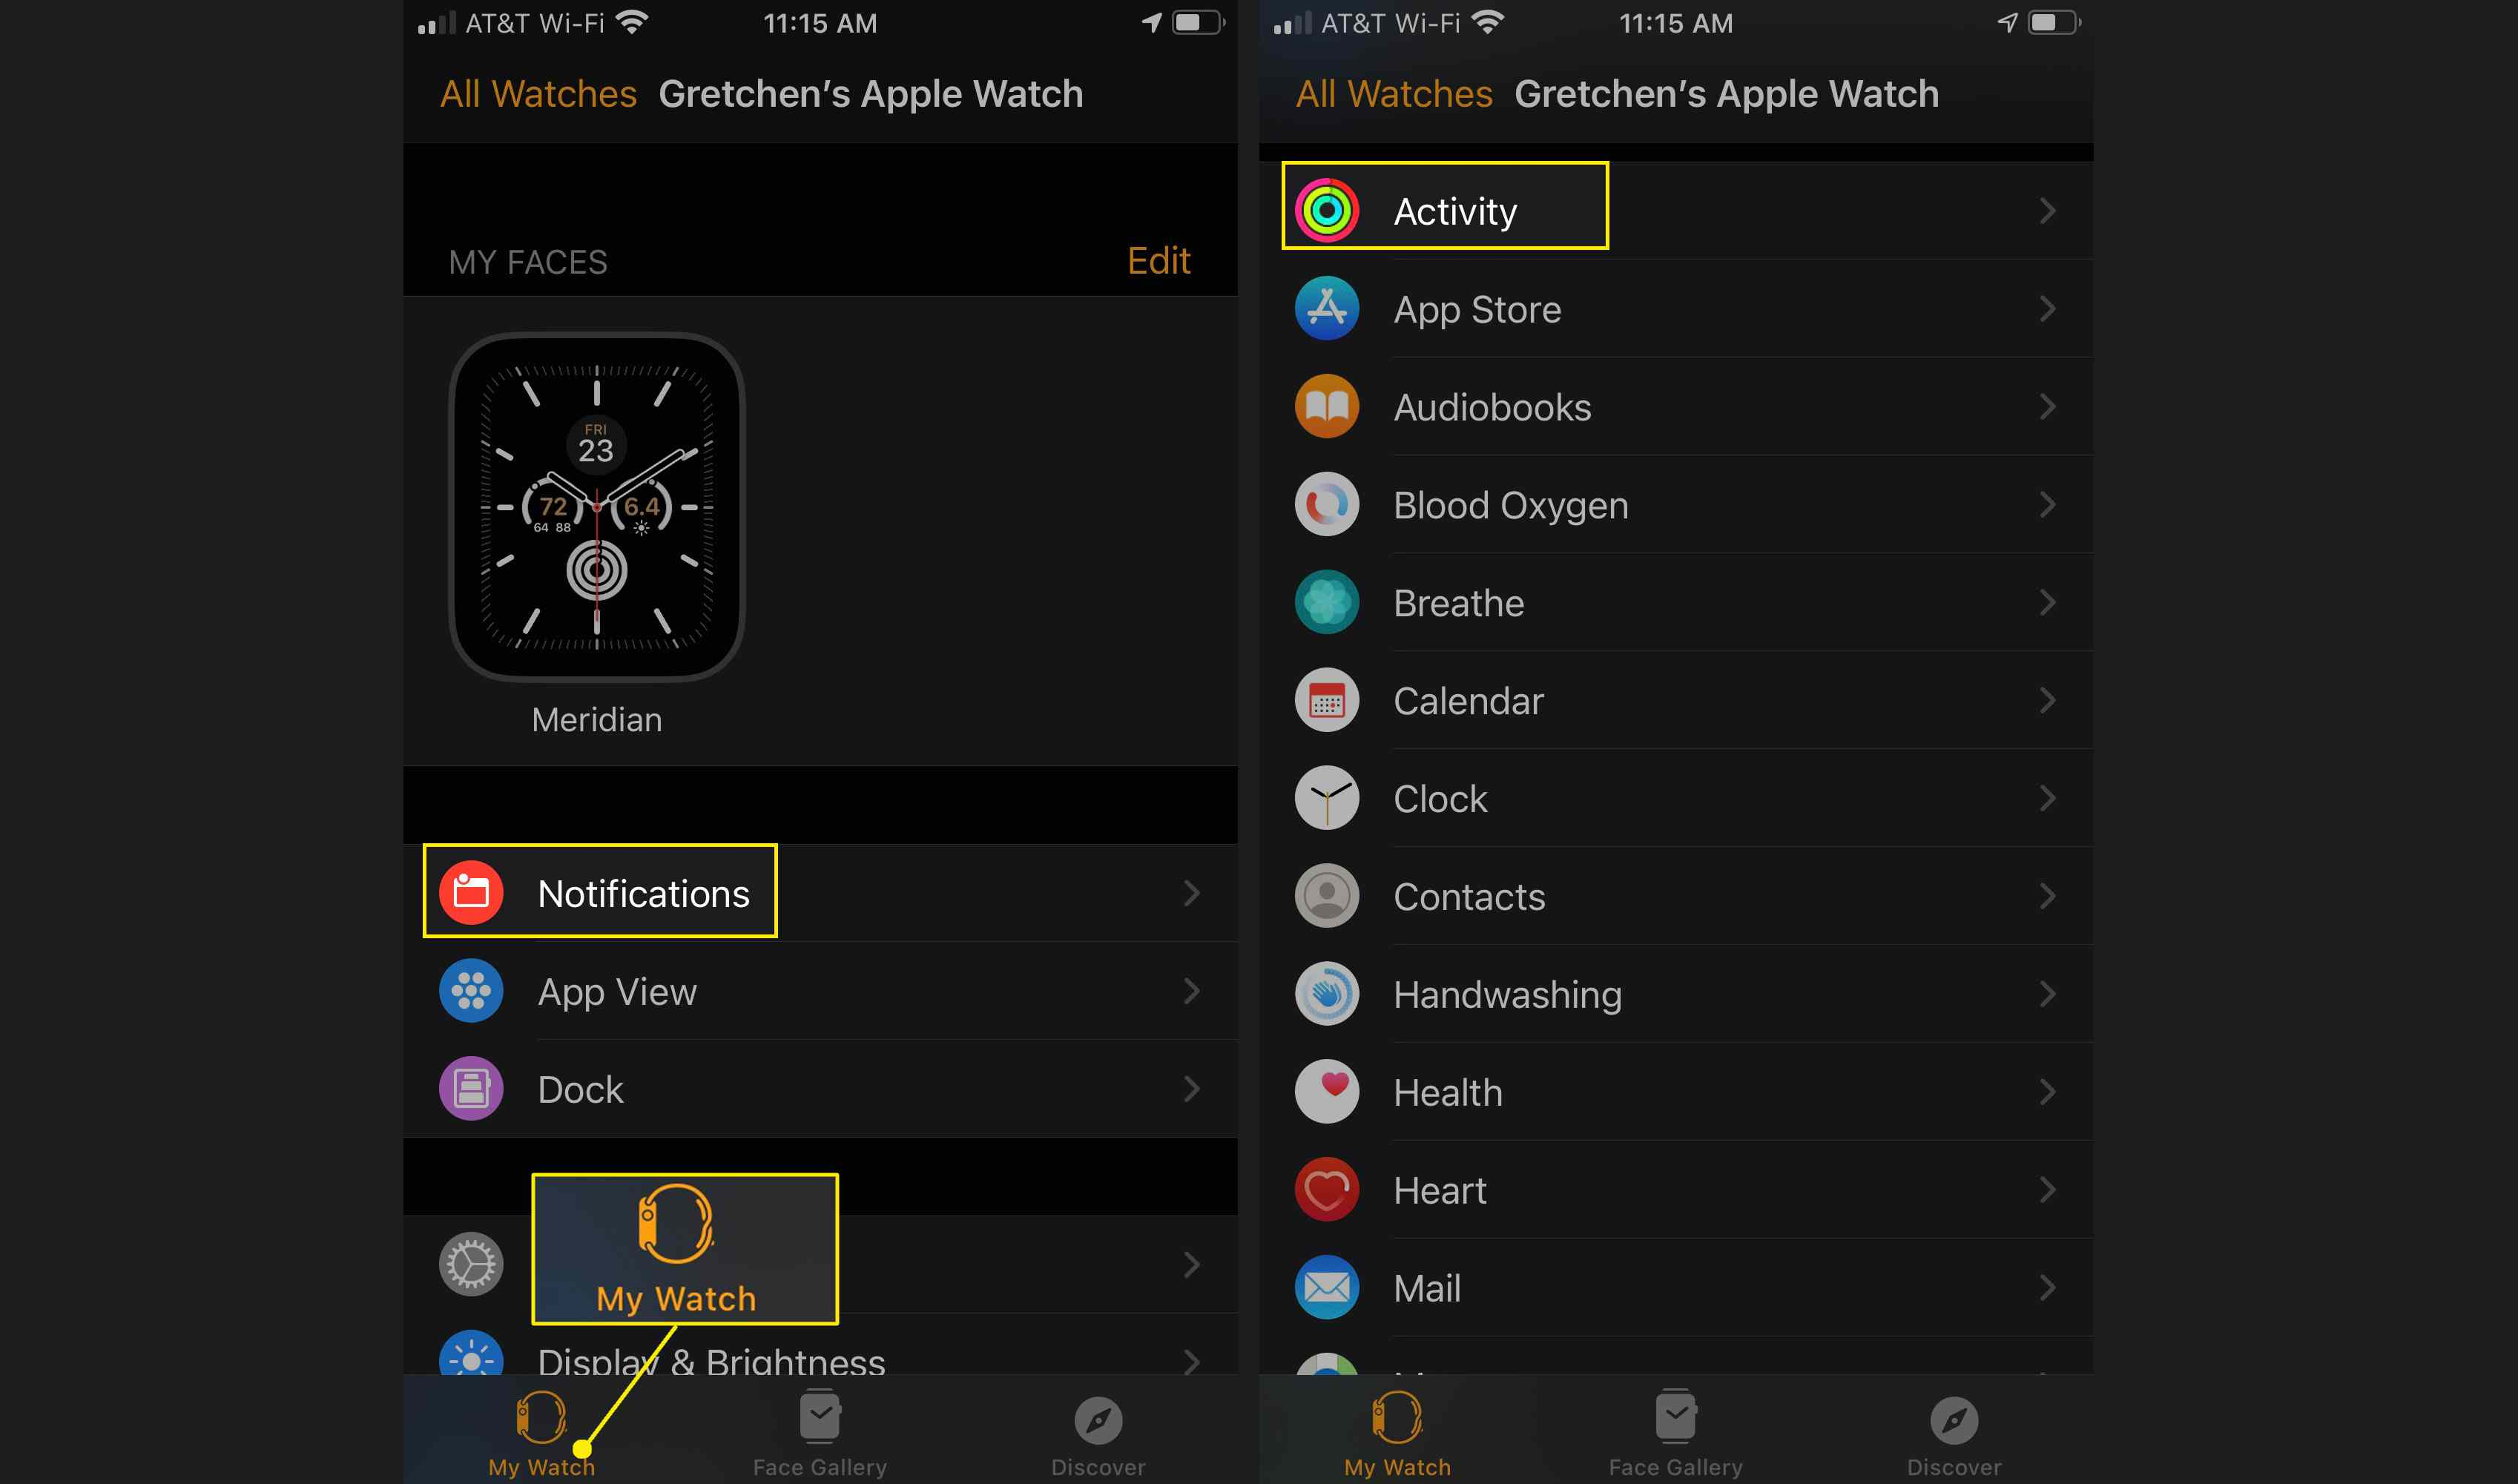 Launch the Watch app Activity section